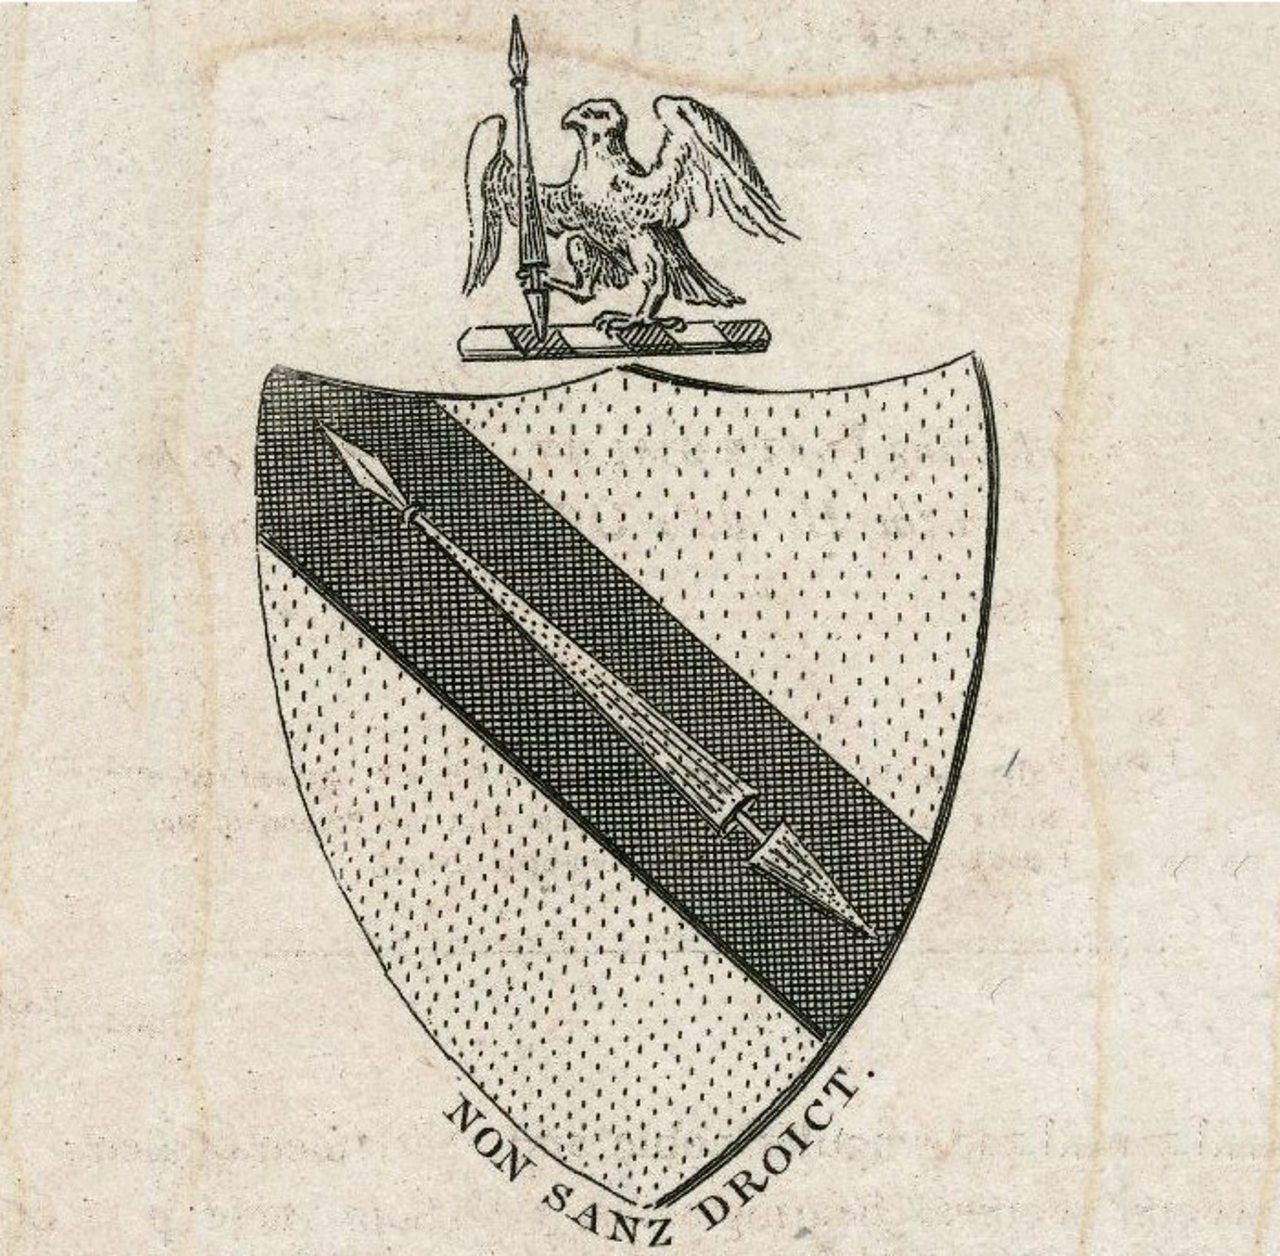 William Shakespeare's coat of arms, reproduced in 1787. The words  'Non sanz droict' are inscribed, it means 'Not without right'.